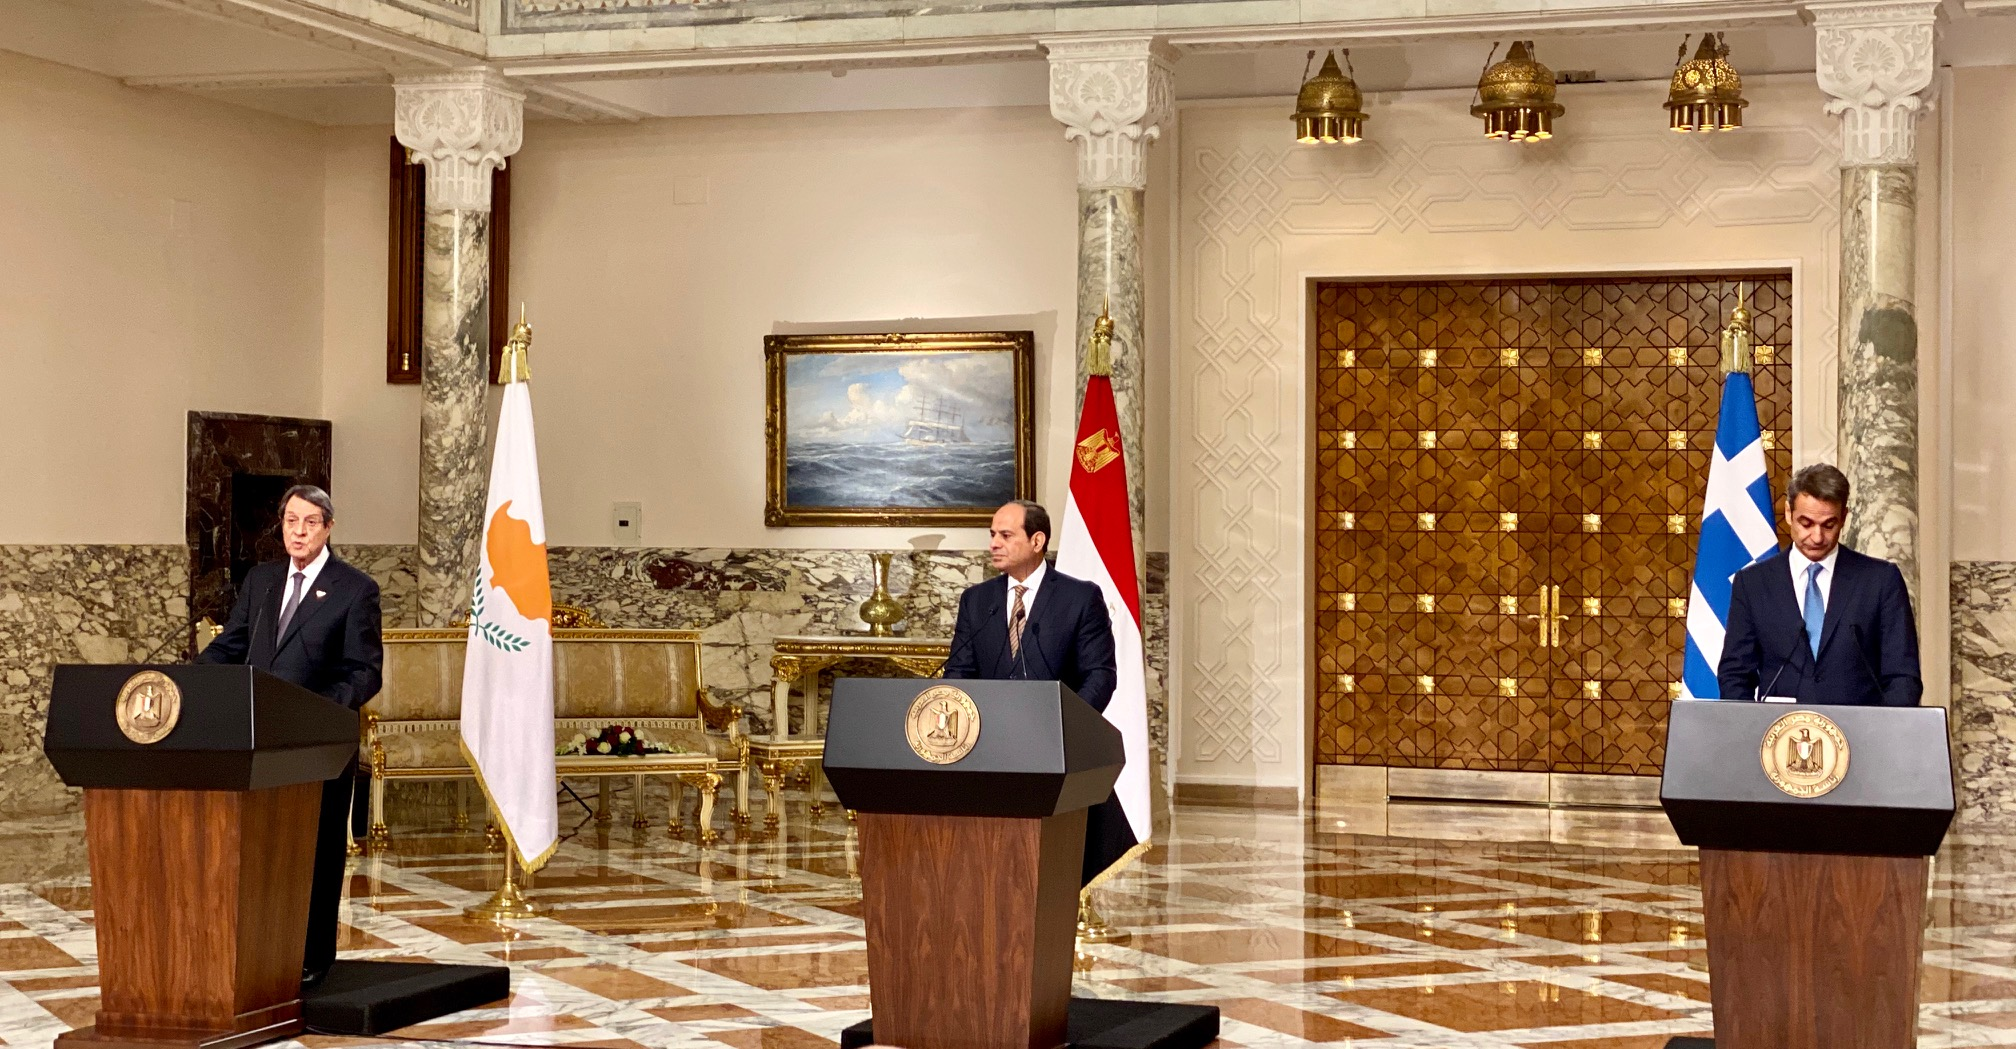 Cyprus-Greece-Egypt Tripartite Summit was held today in Cairo